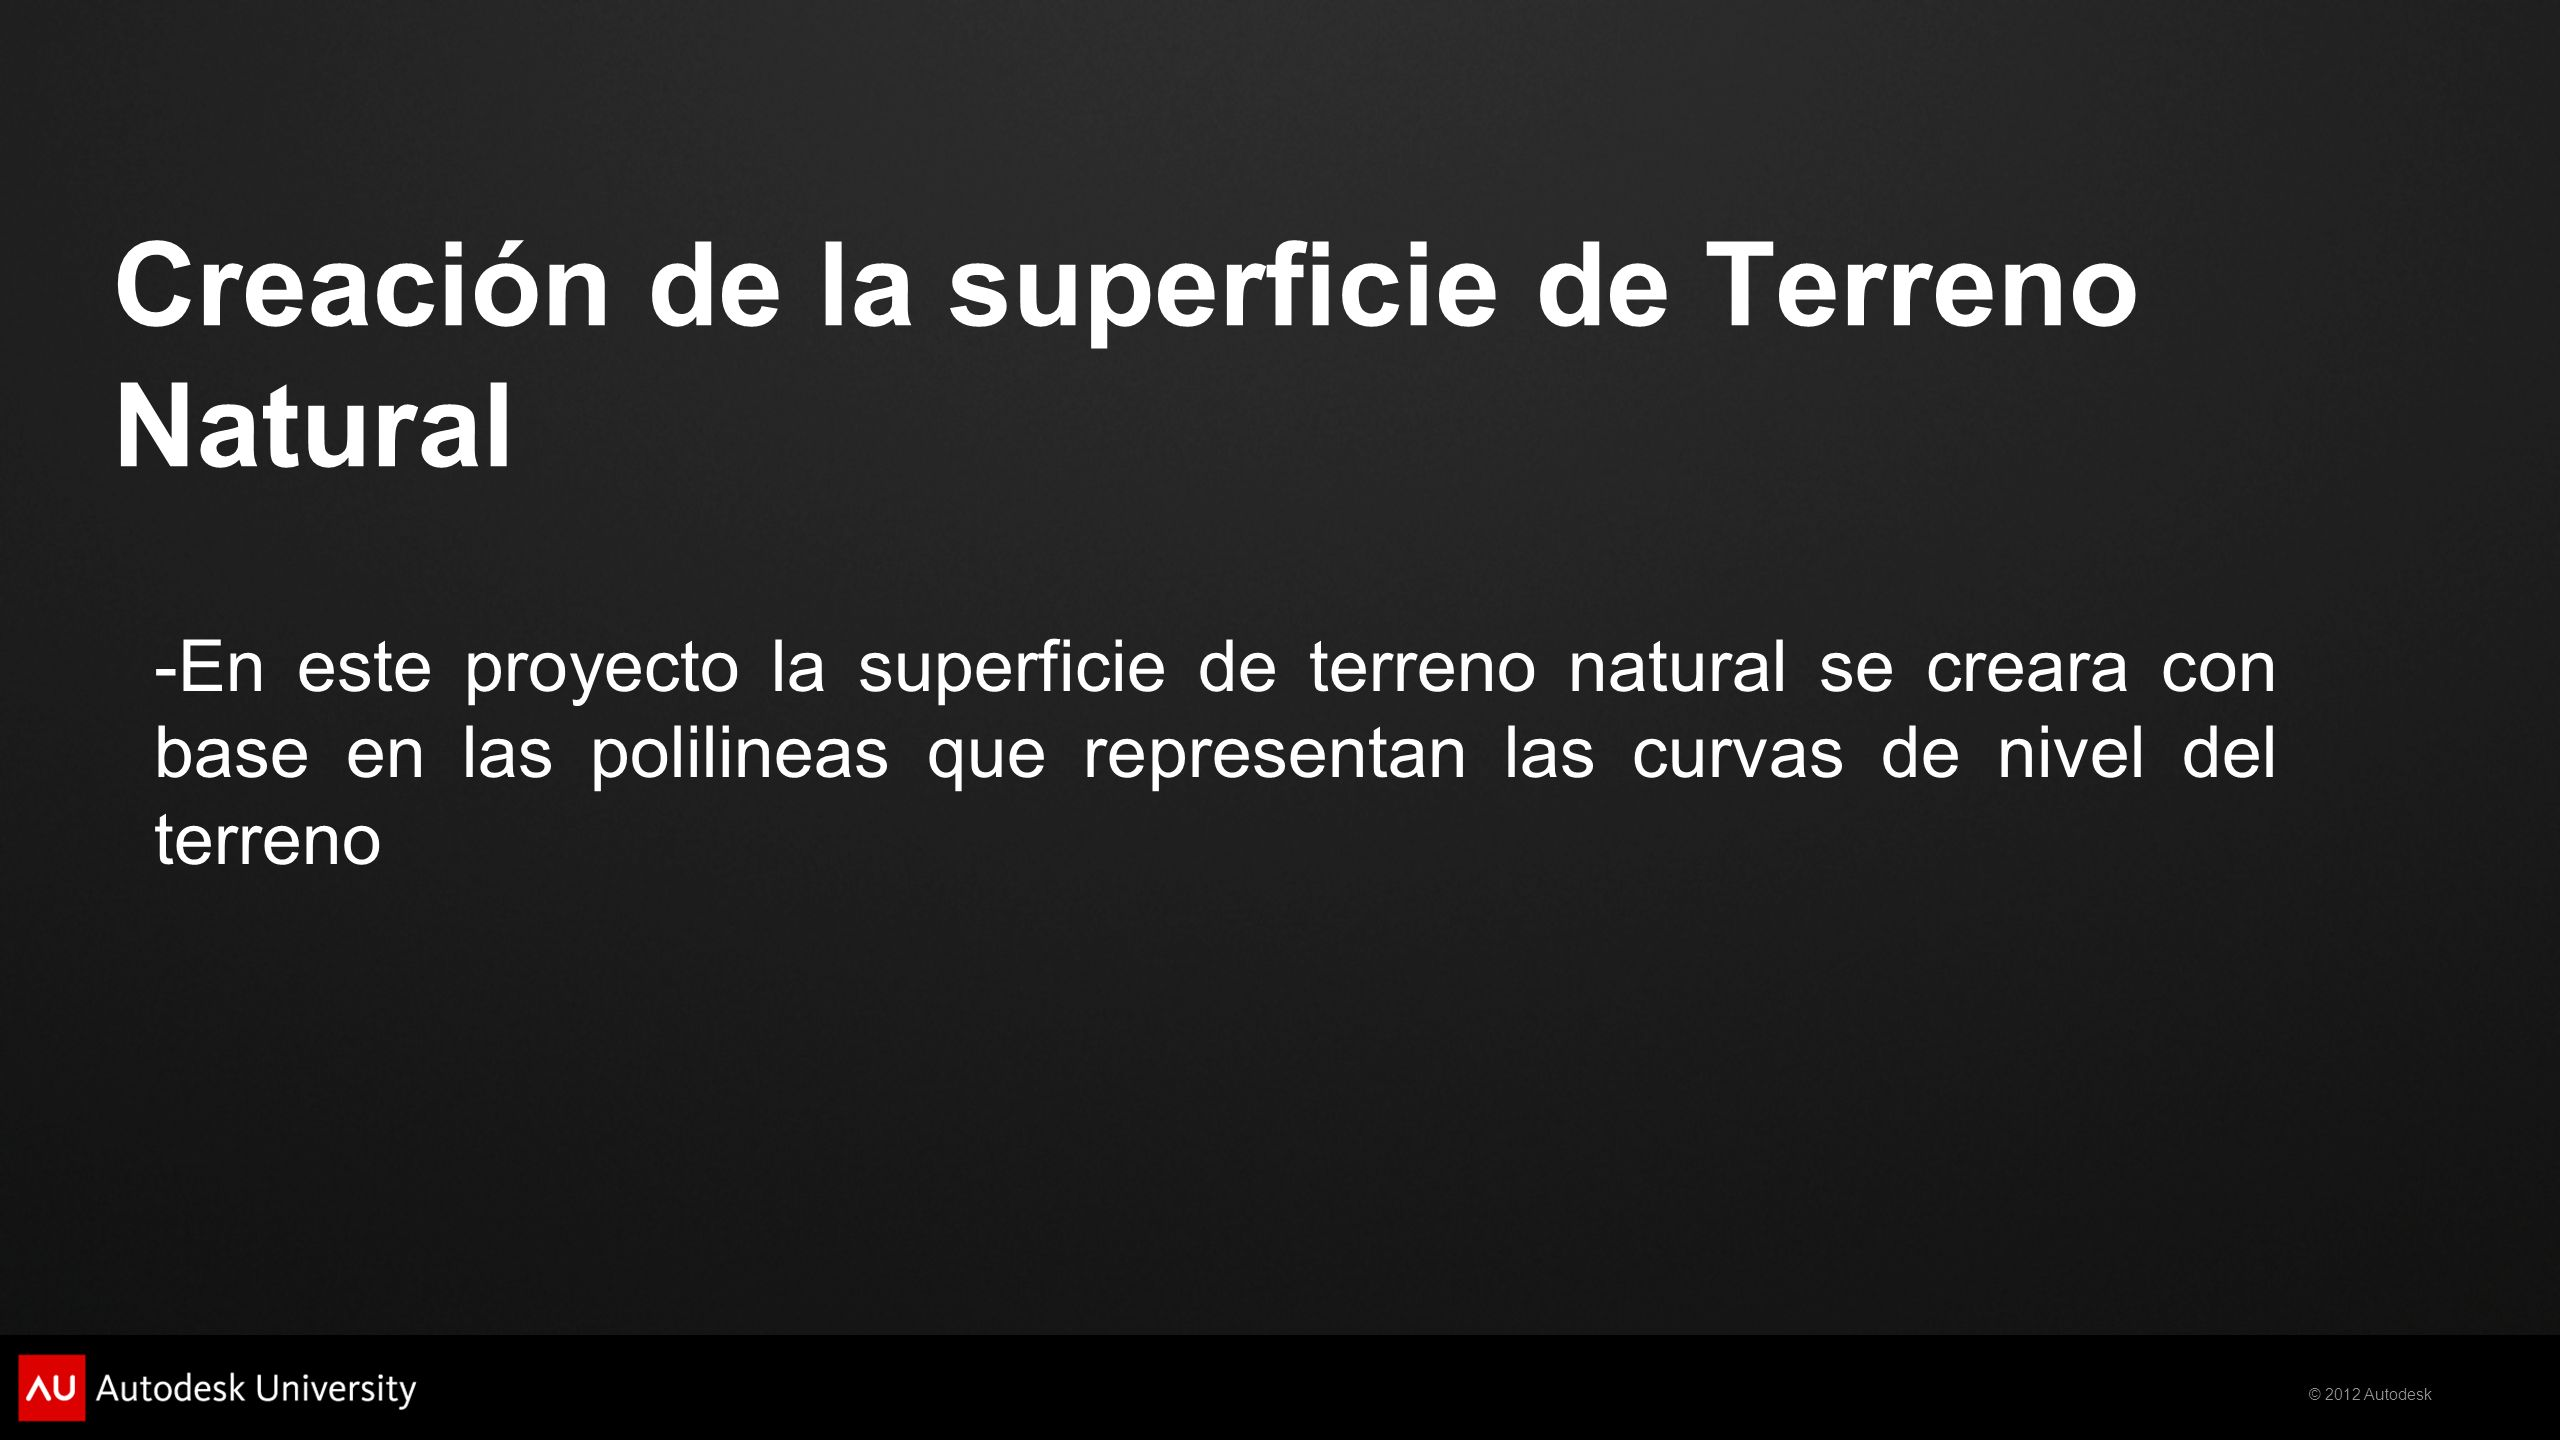 Creación de la superficie de Terreno Natural